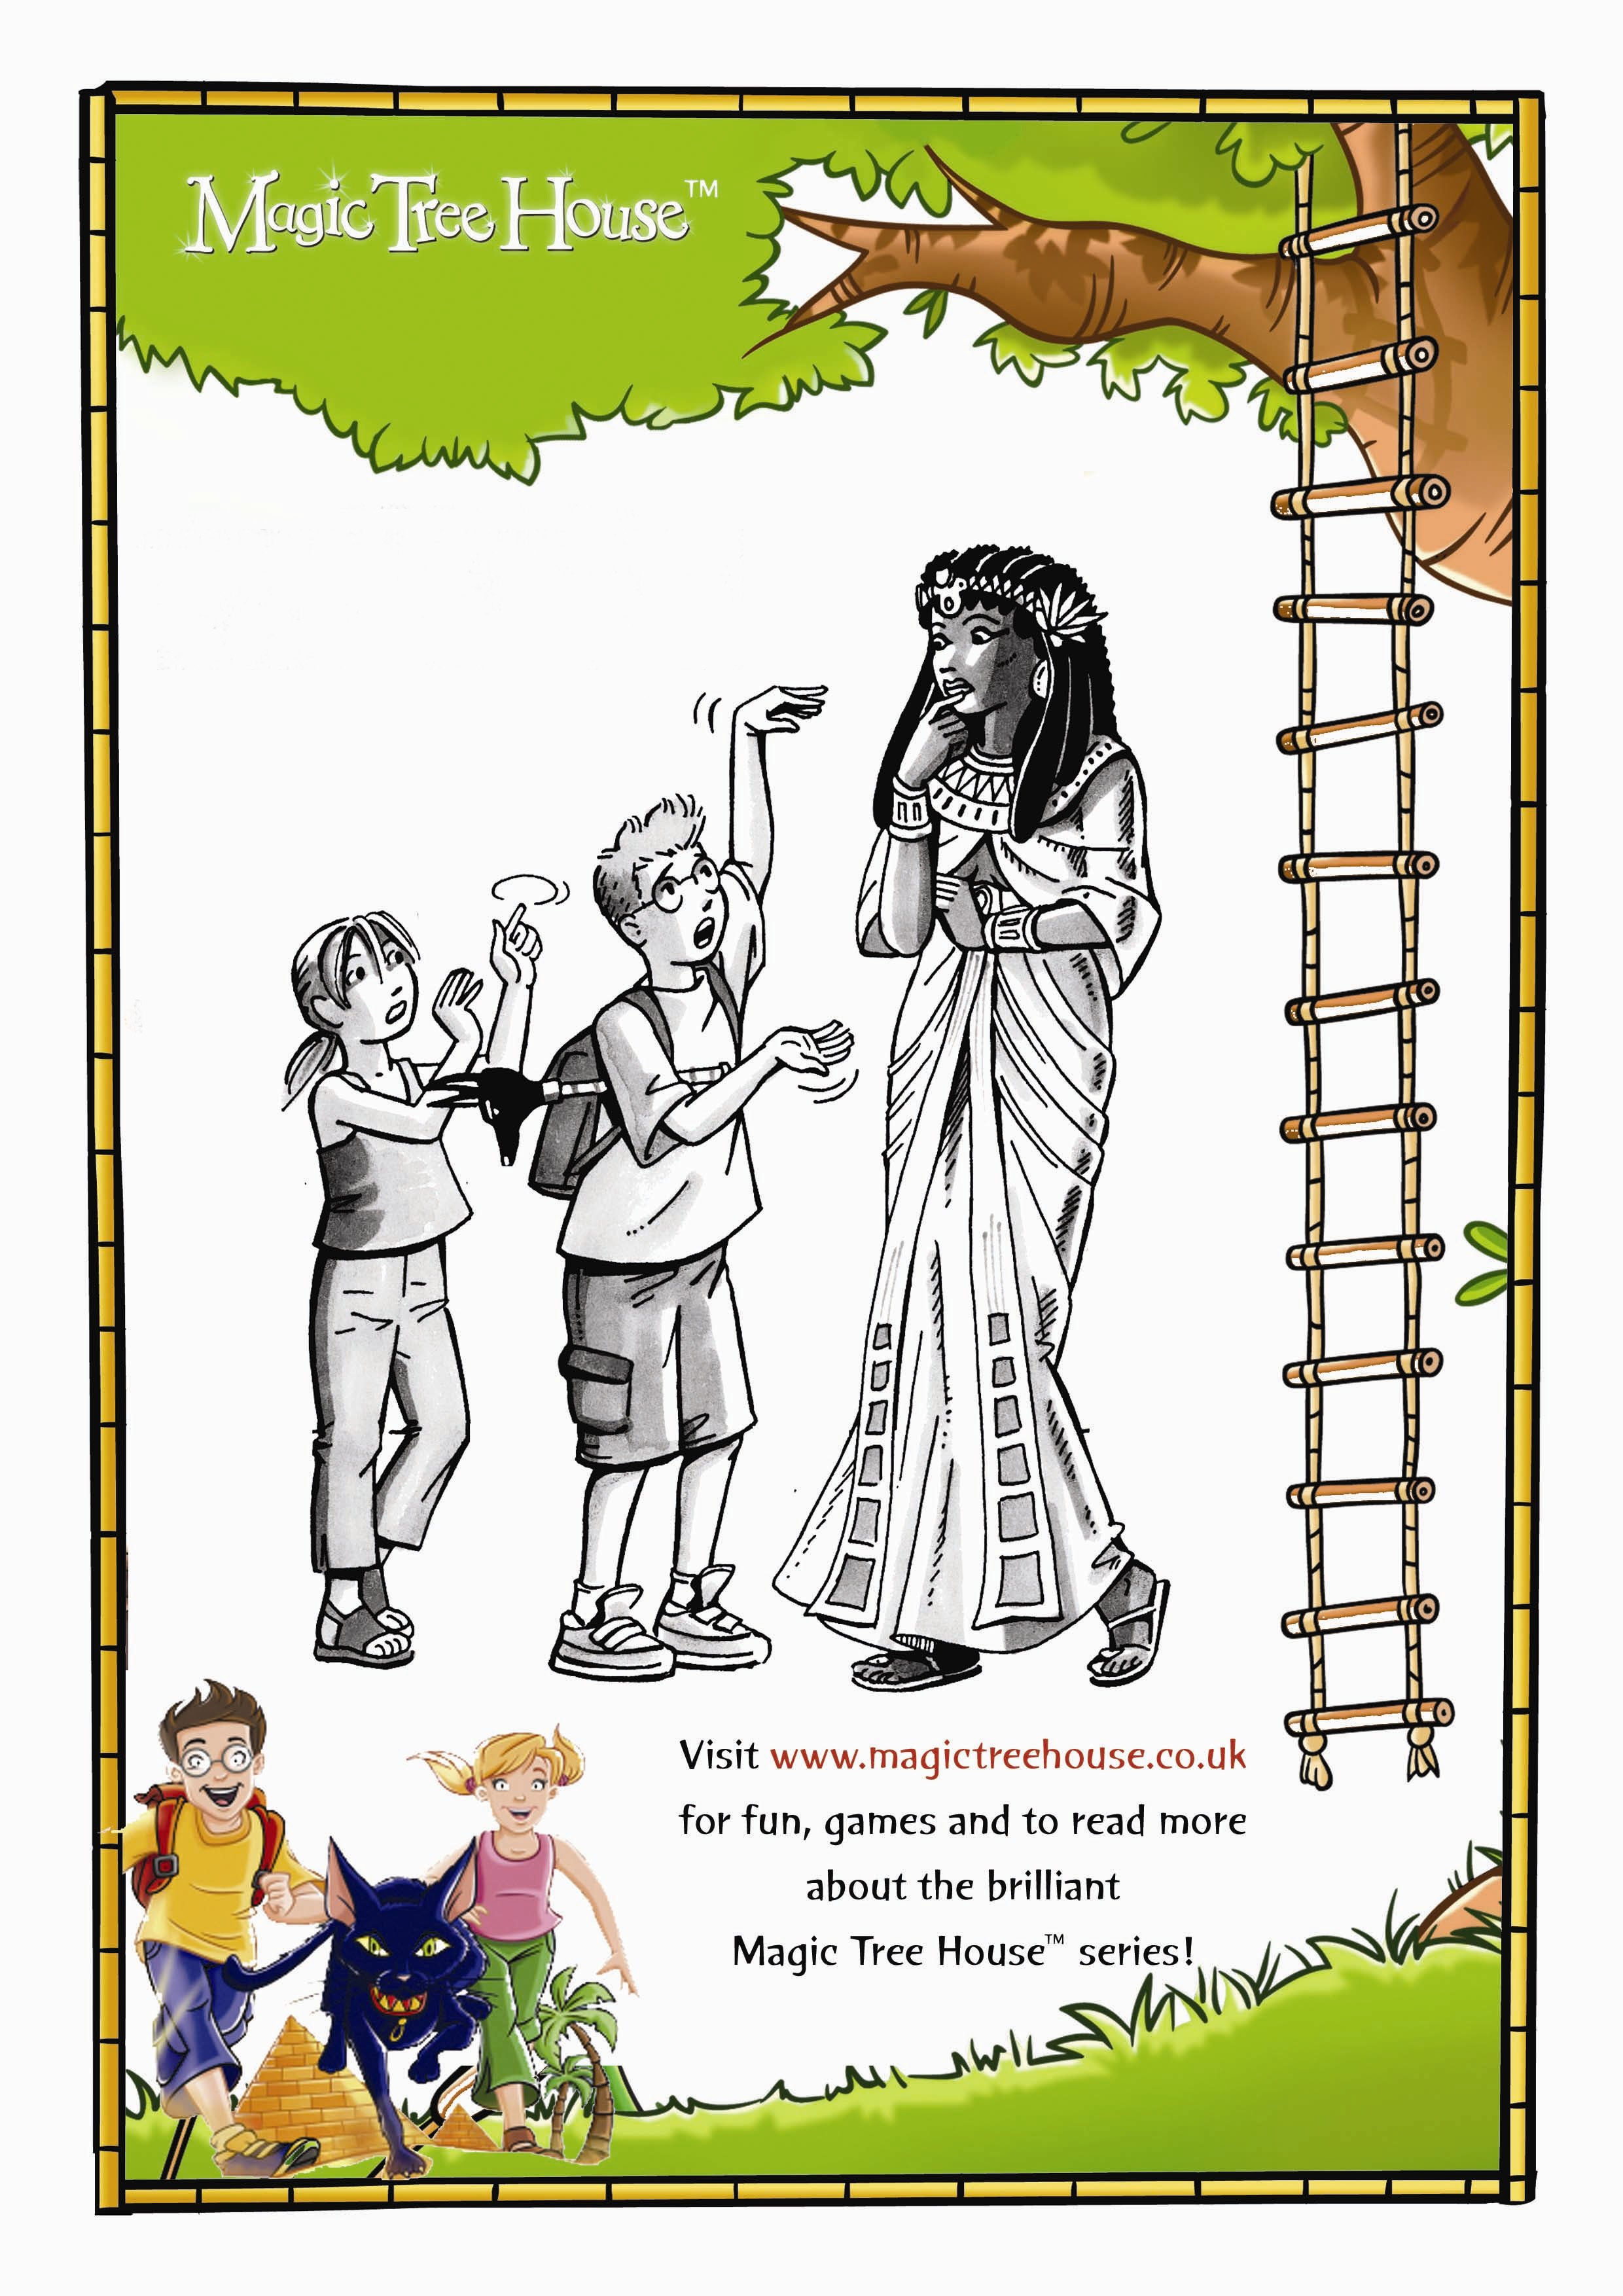 Magic Tree House Colouring Activity - Scholastic Kids' Club